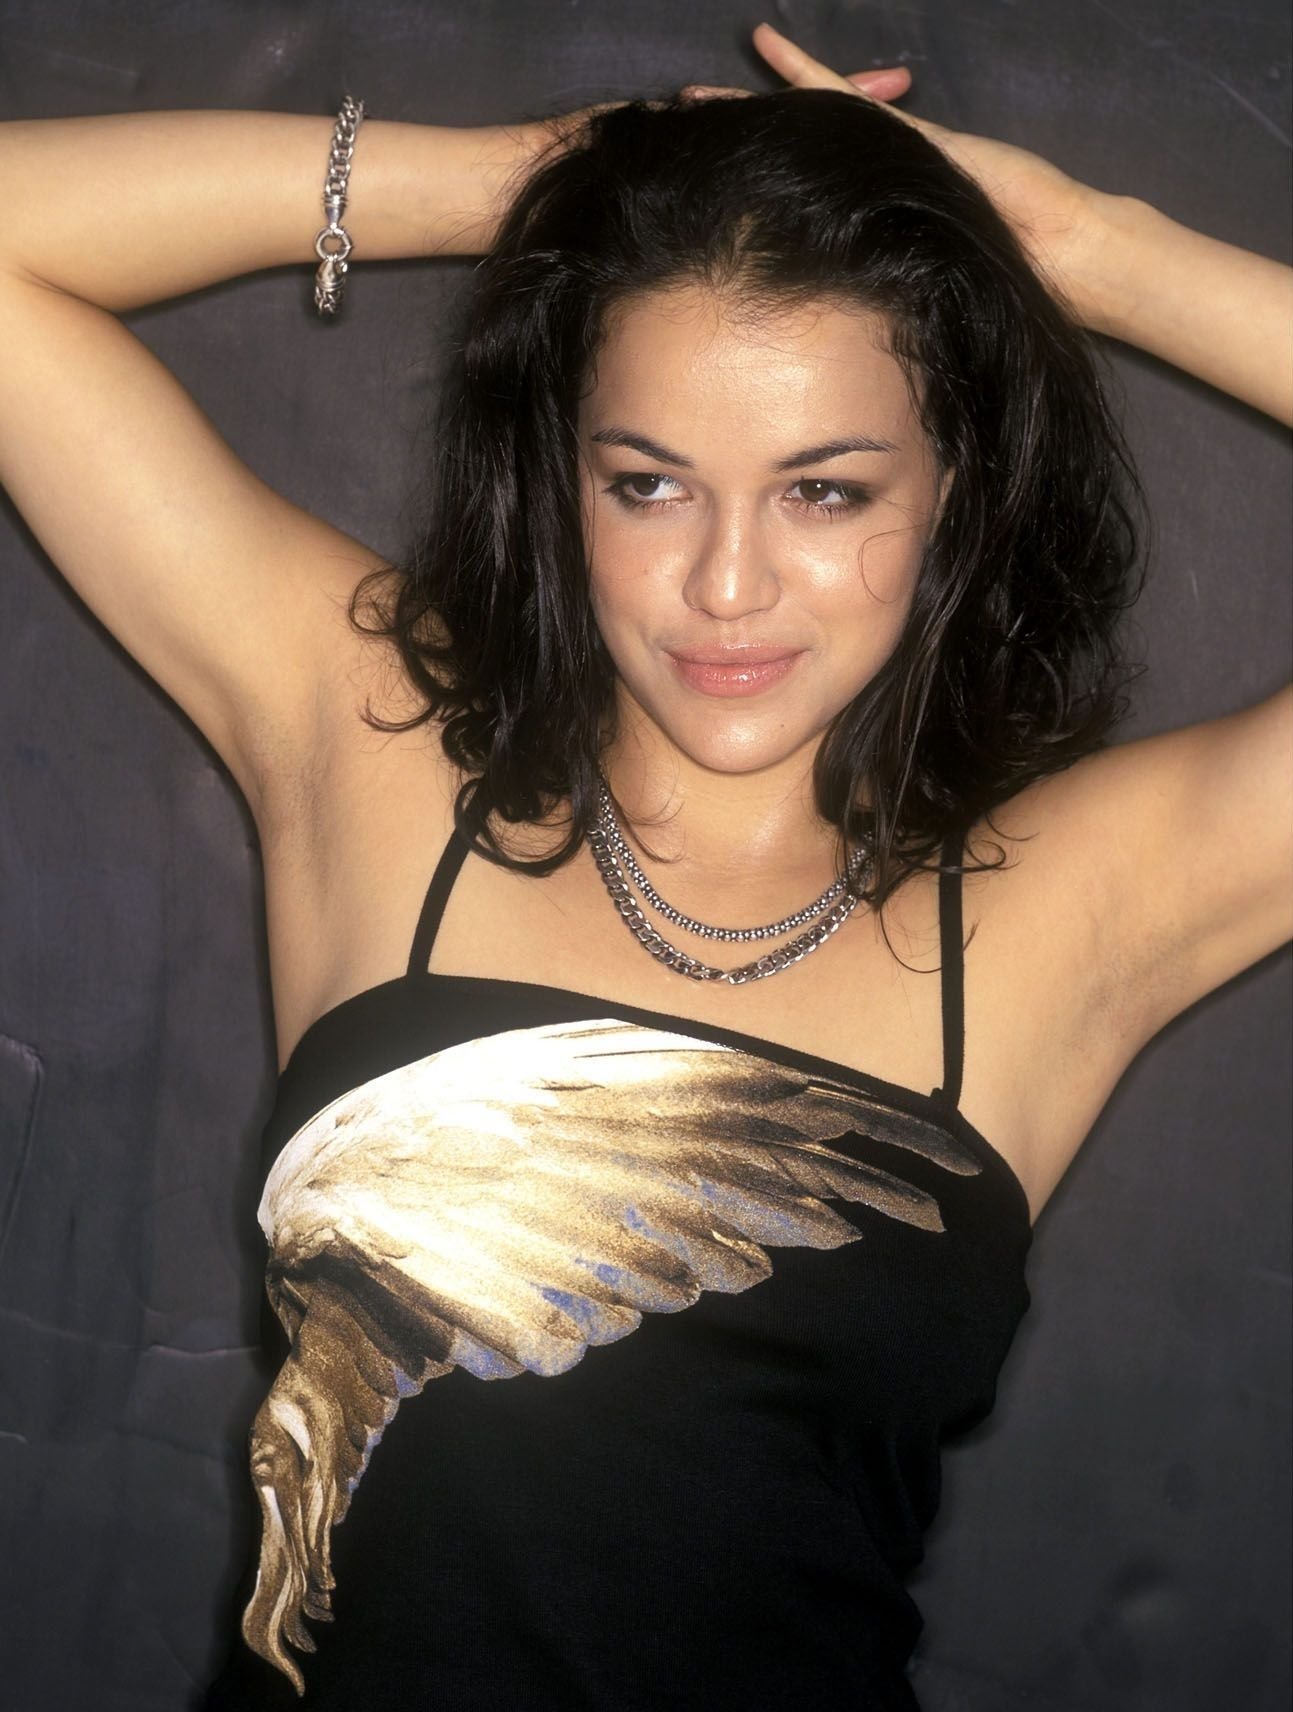 Celebrity Michelle Rodriguez nudes (27 foto and video), Sexy, Cleavage, Feet, swimsuit 2019